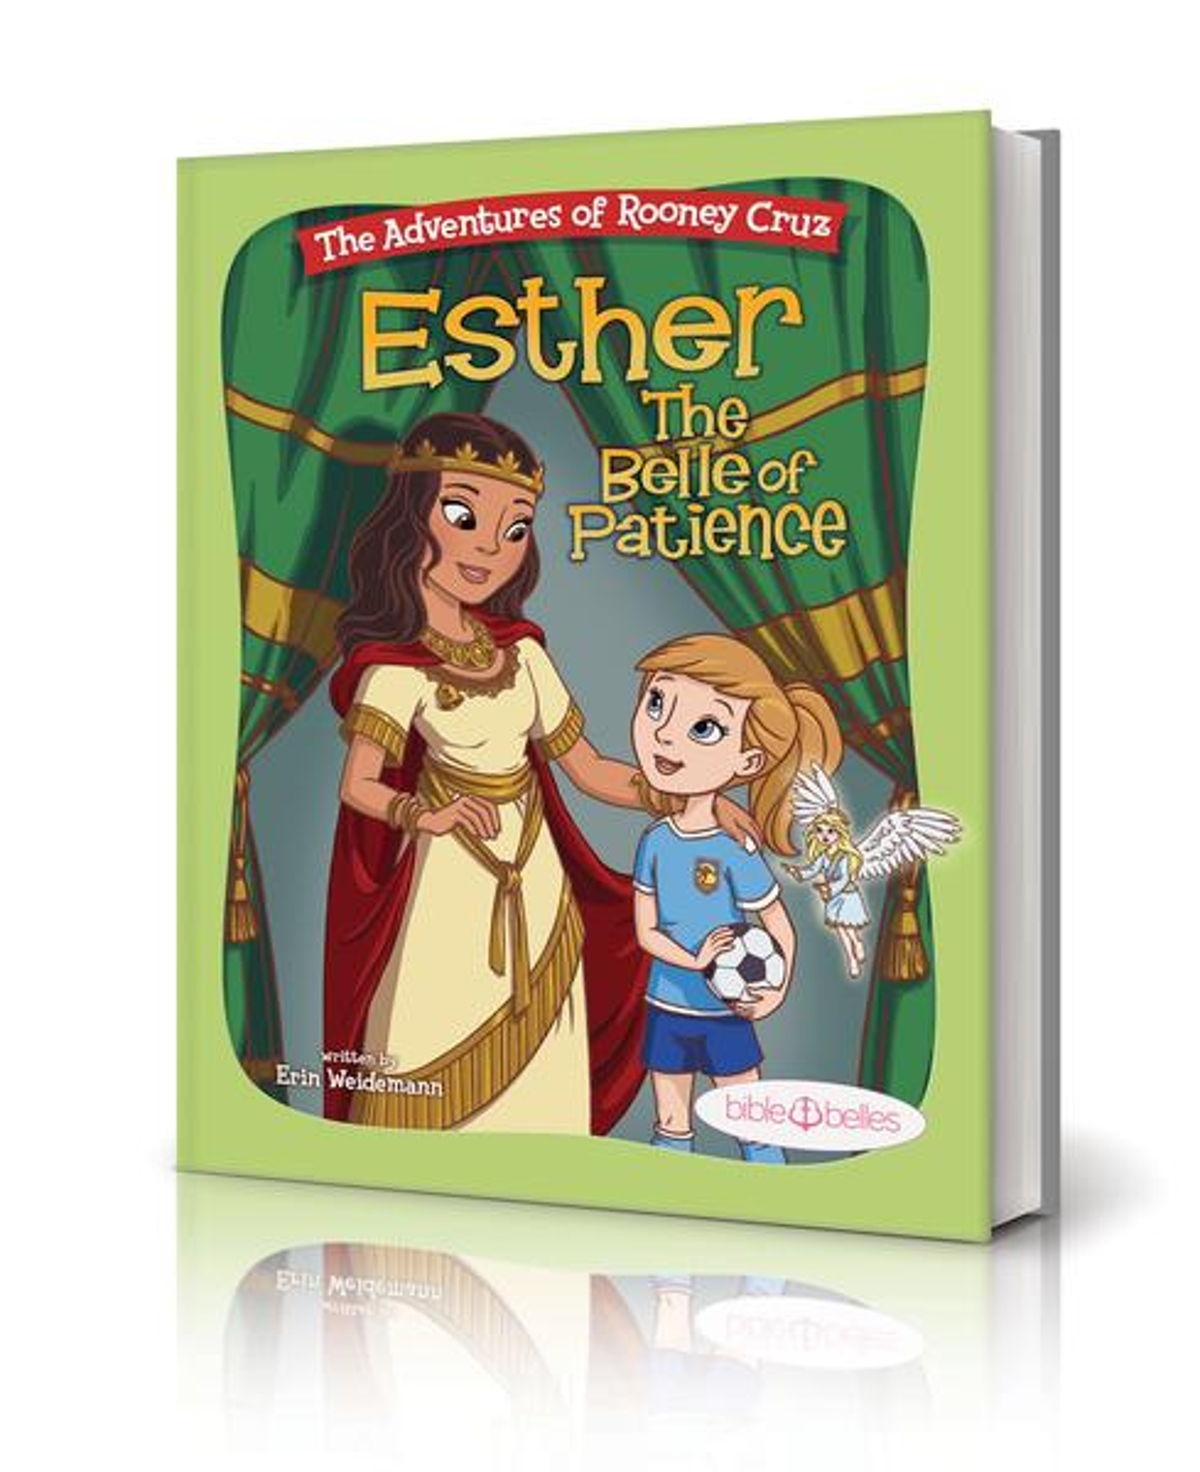 Esther - The Belle Of Patience